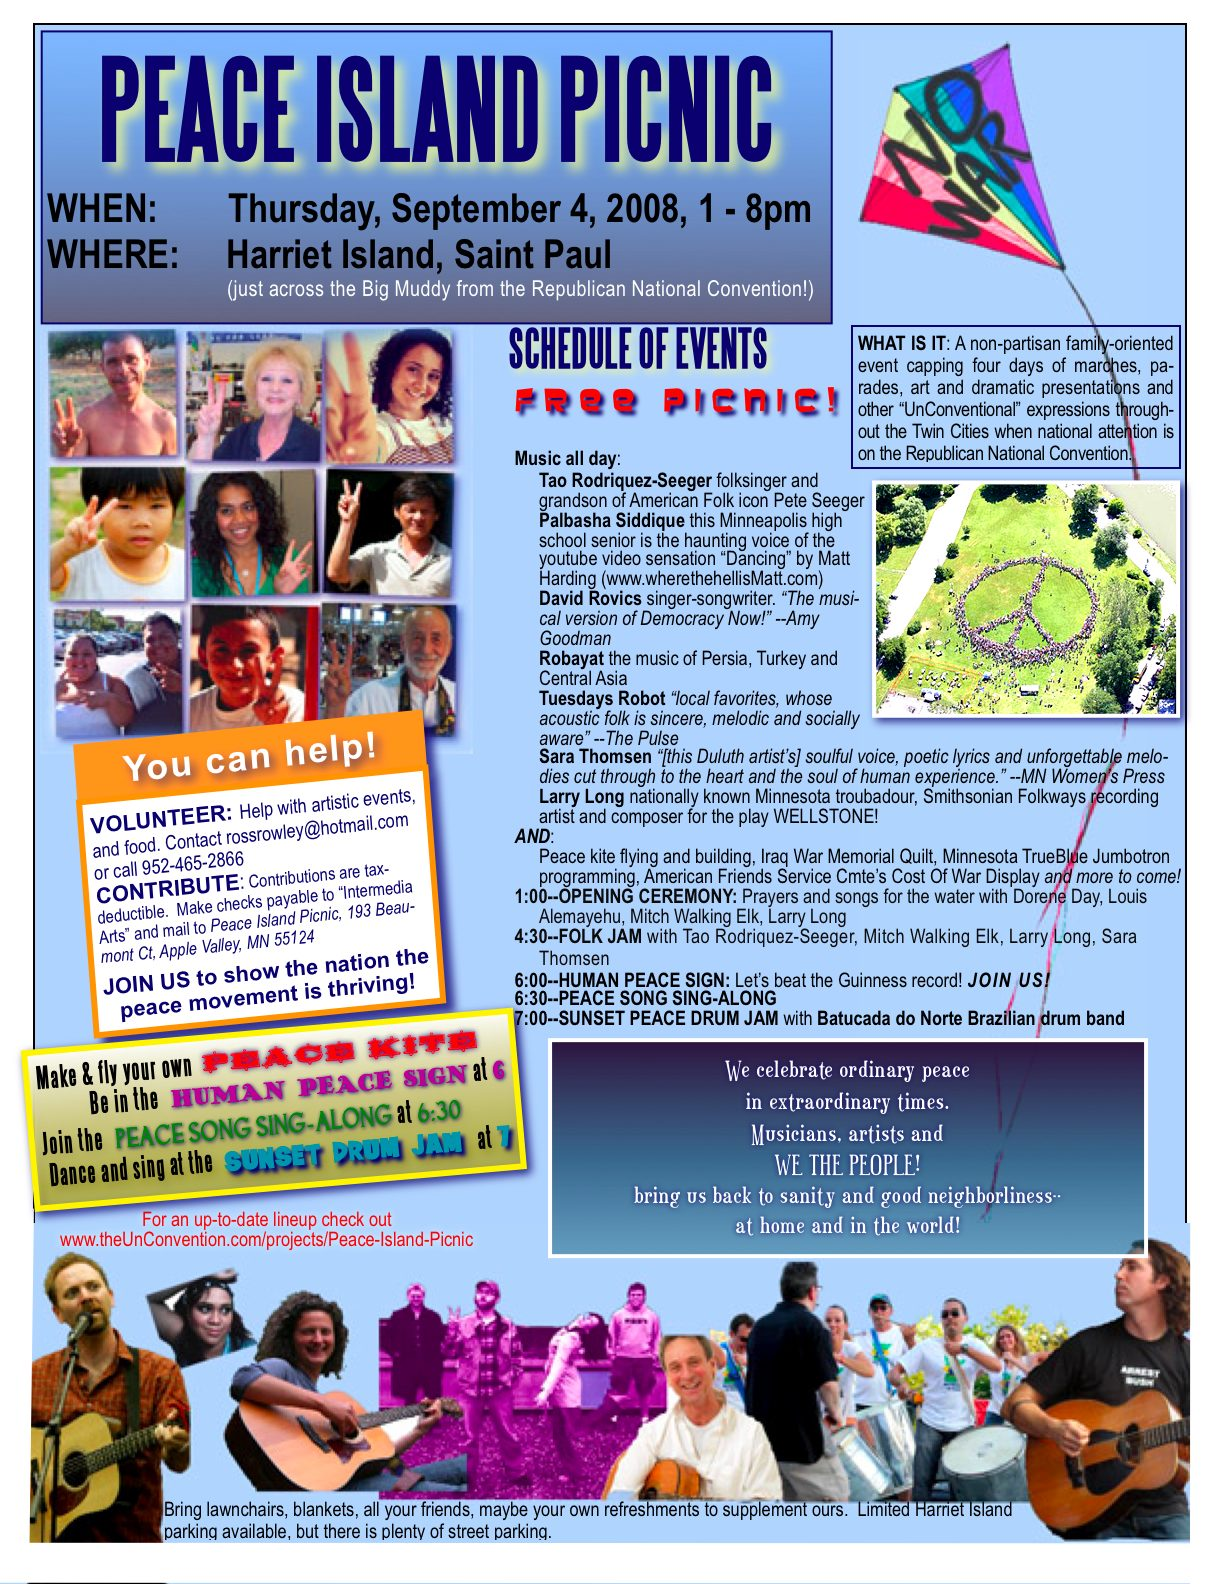 Peace Island Picnic flyer